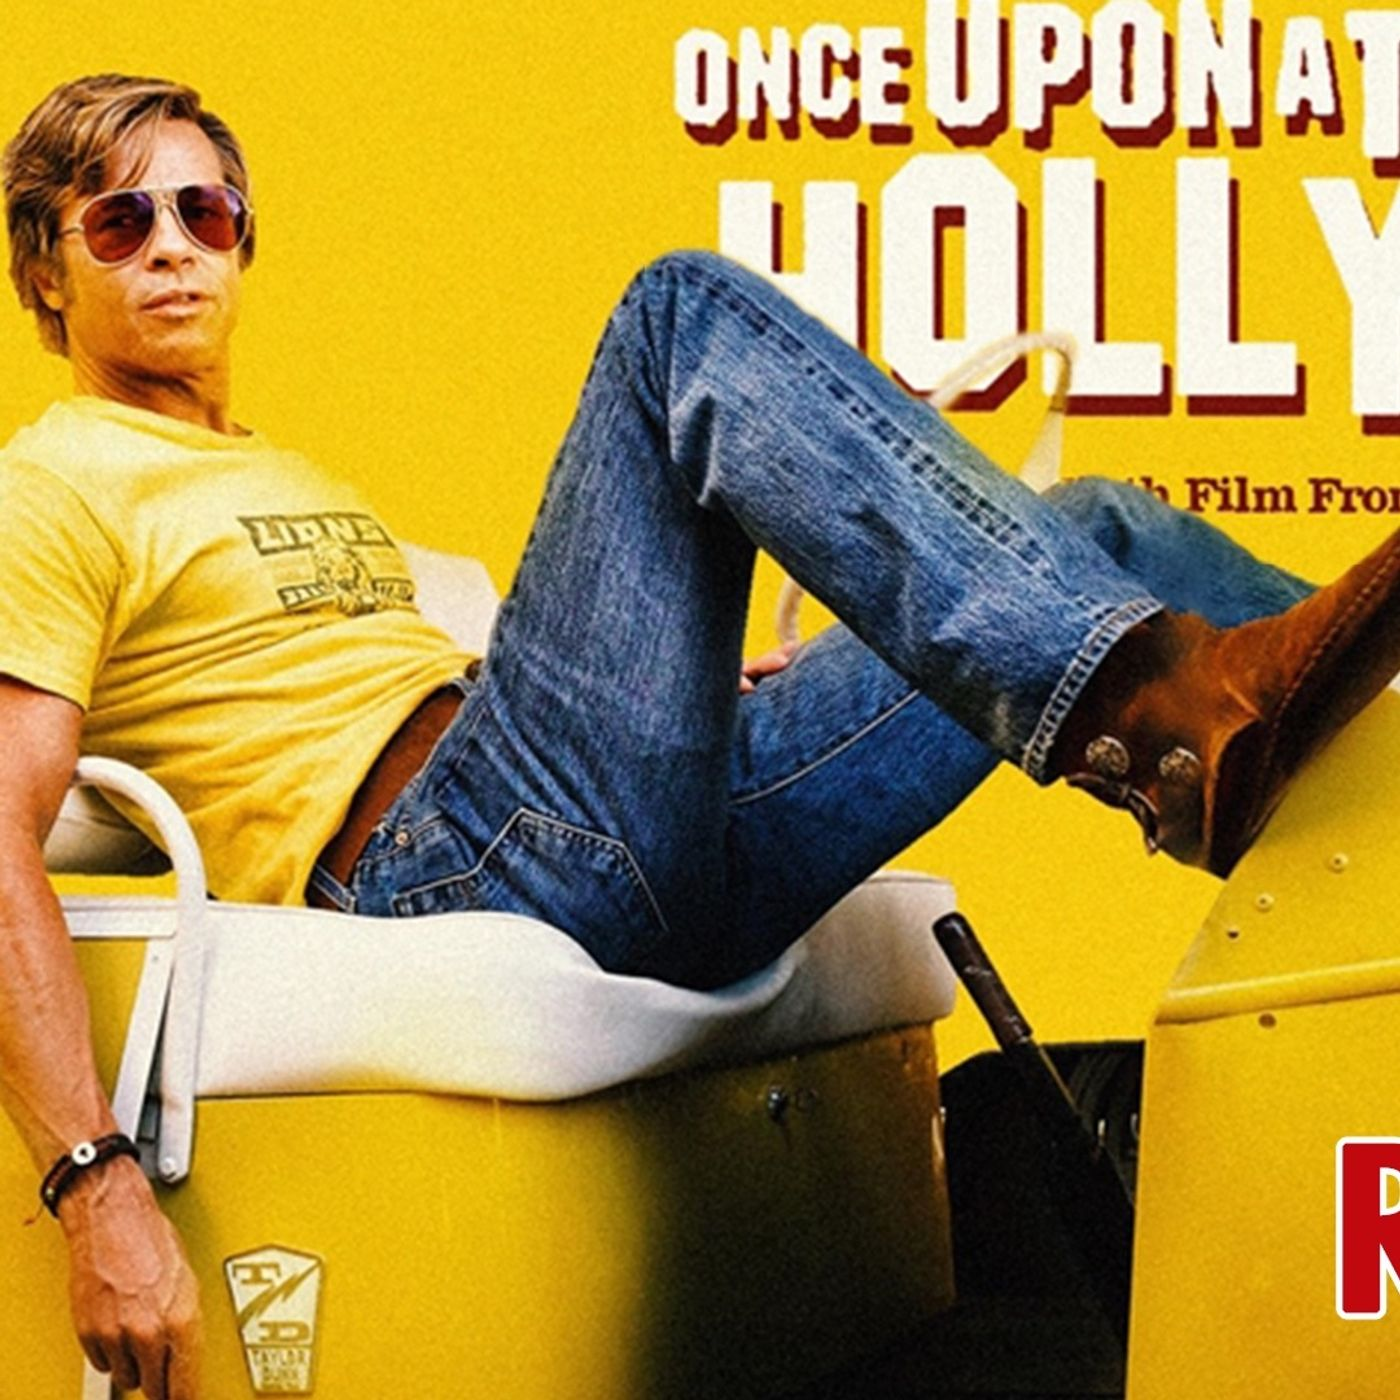 Once Upon a Time in Hollywood (SPOILERS AND THEORIES) || Co-Op Reviews